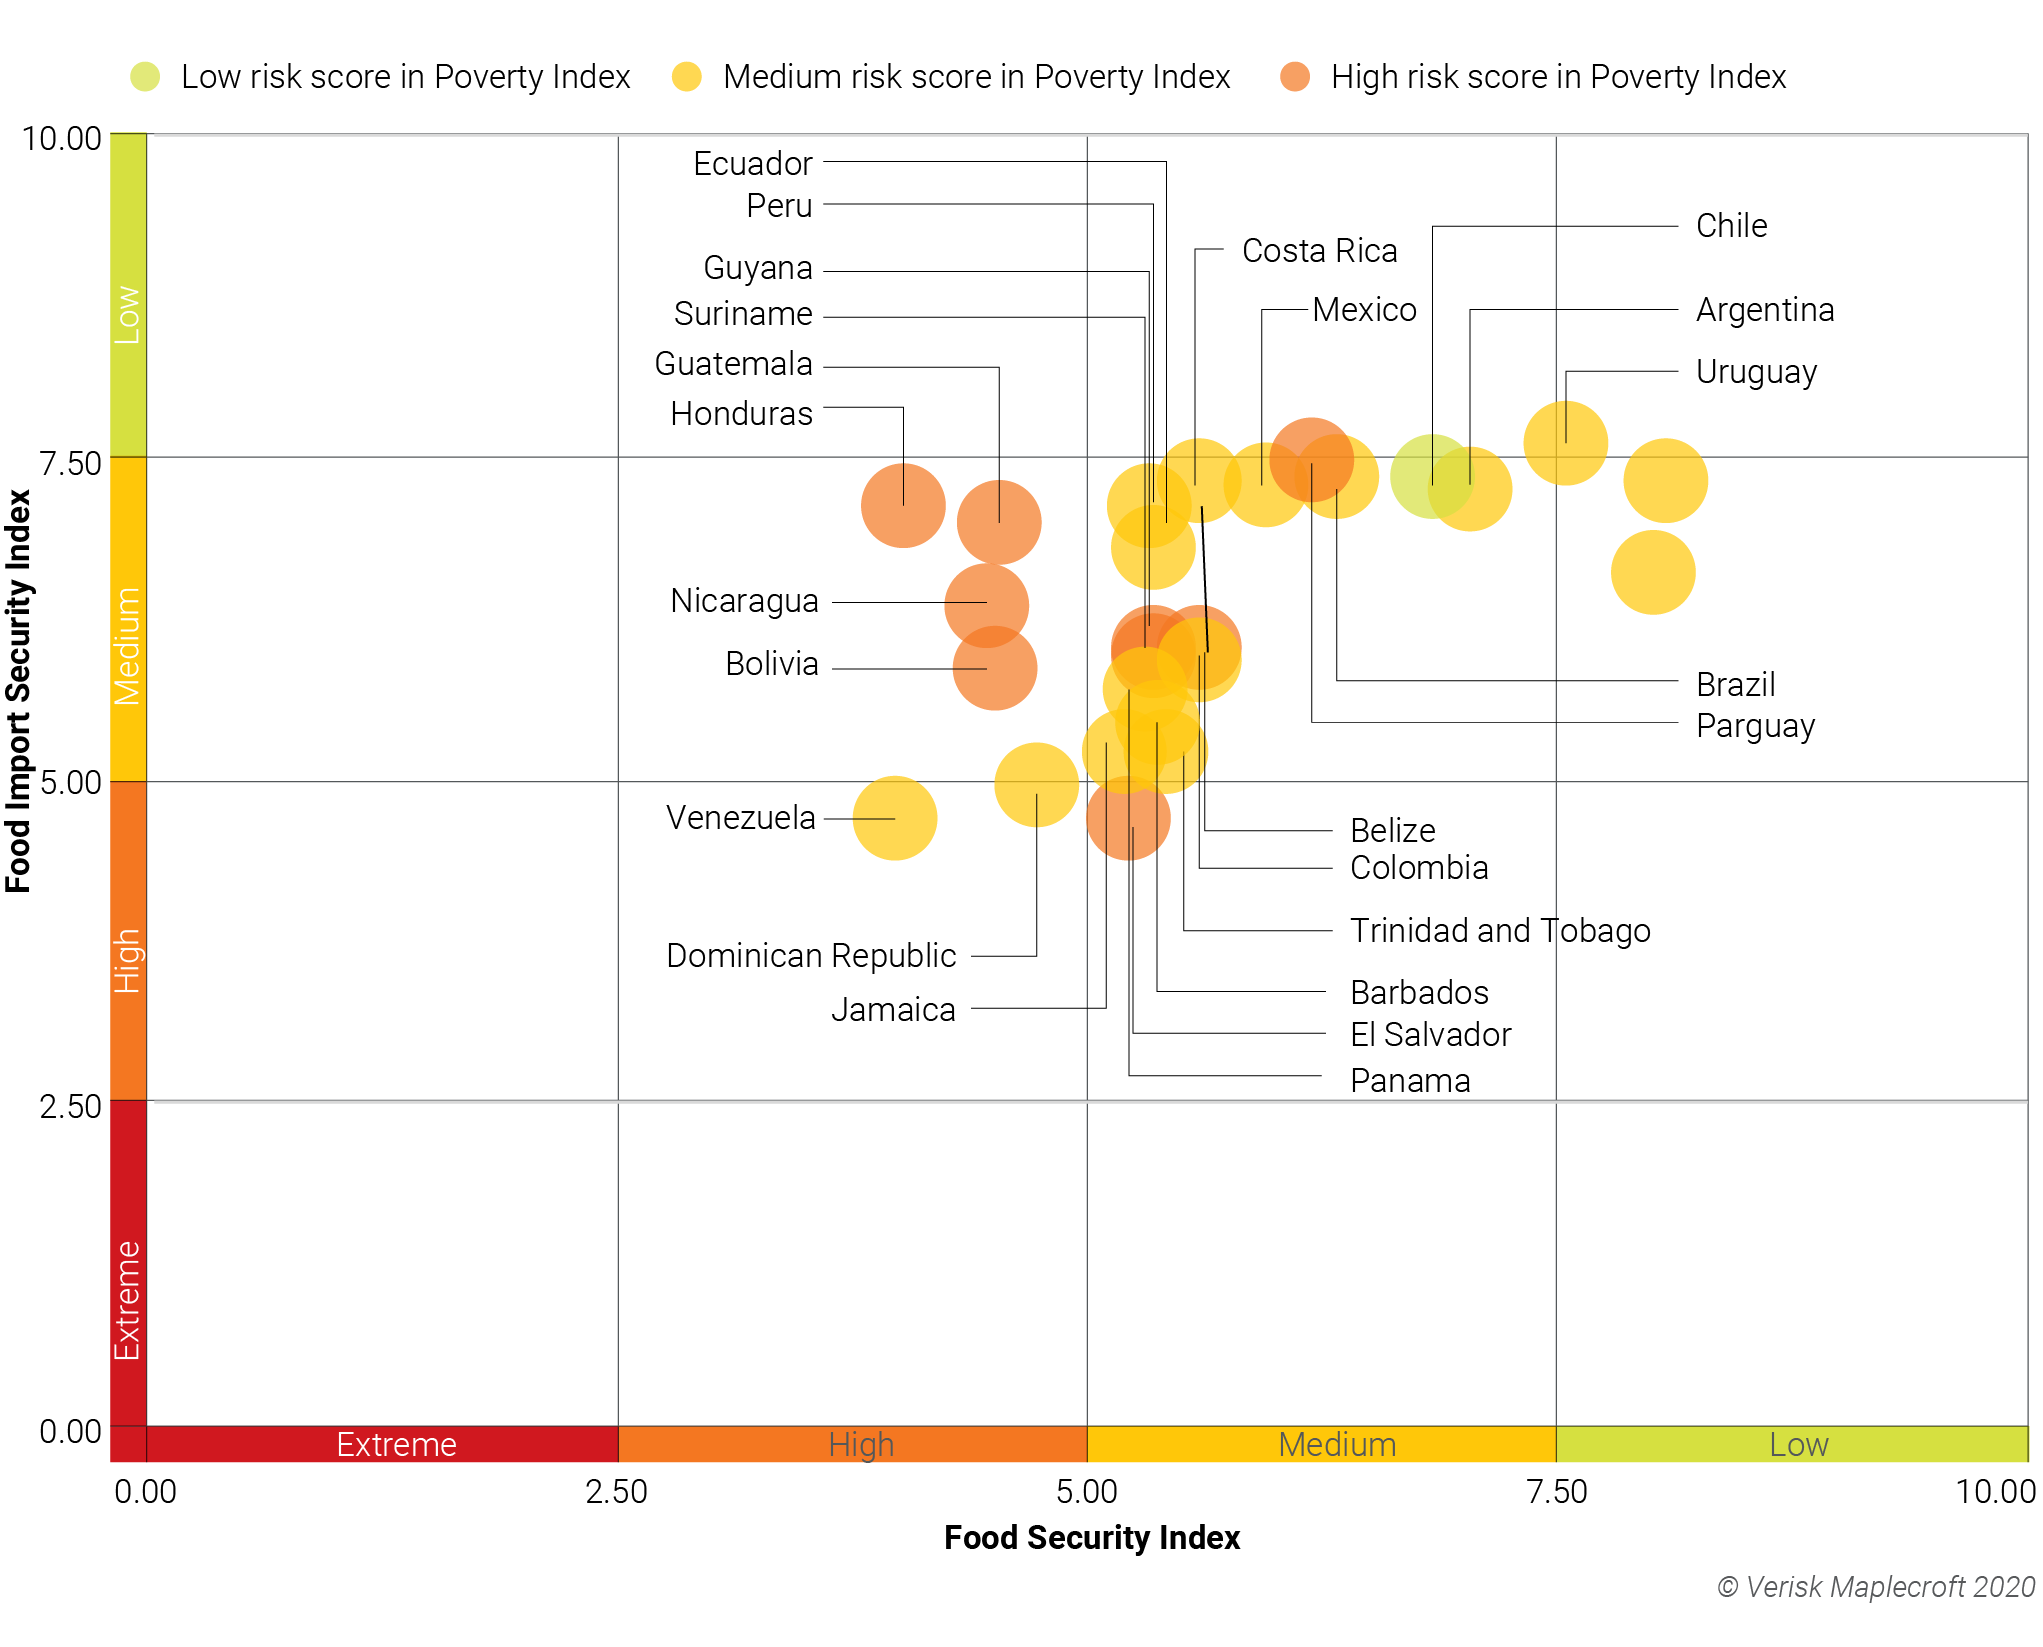 https://www.maplecroft.com/siteassets/images/insight-images/analysis/2020/cac-countries-most-exposed-to-food-insecurity-in-the-americas.png